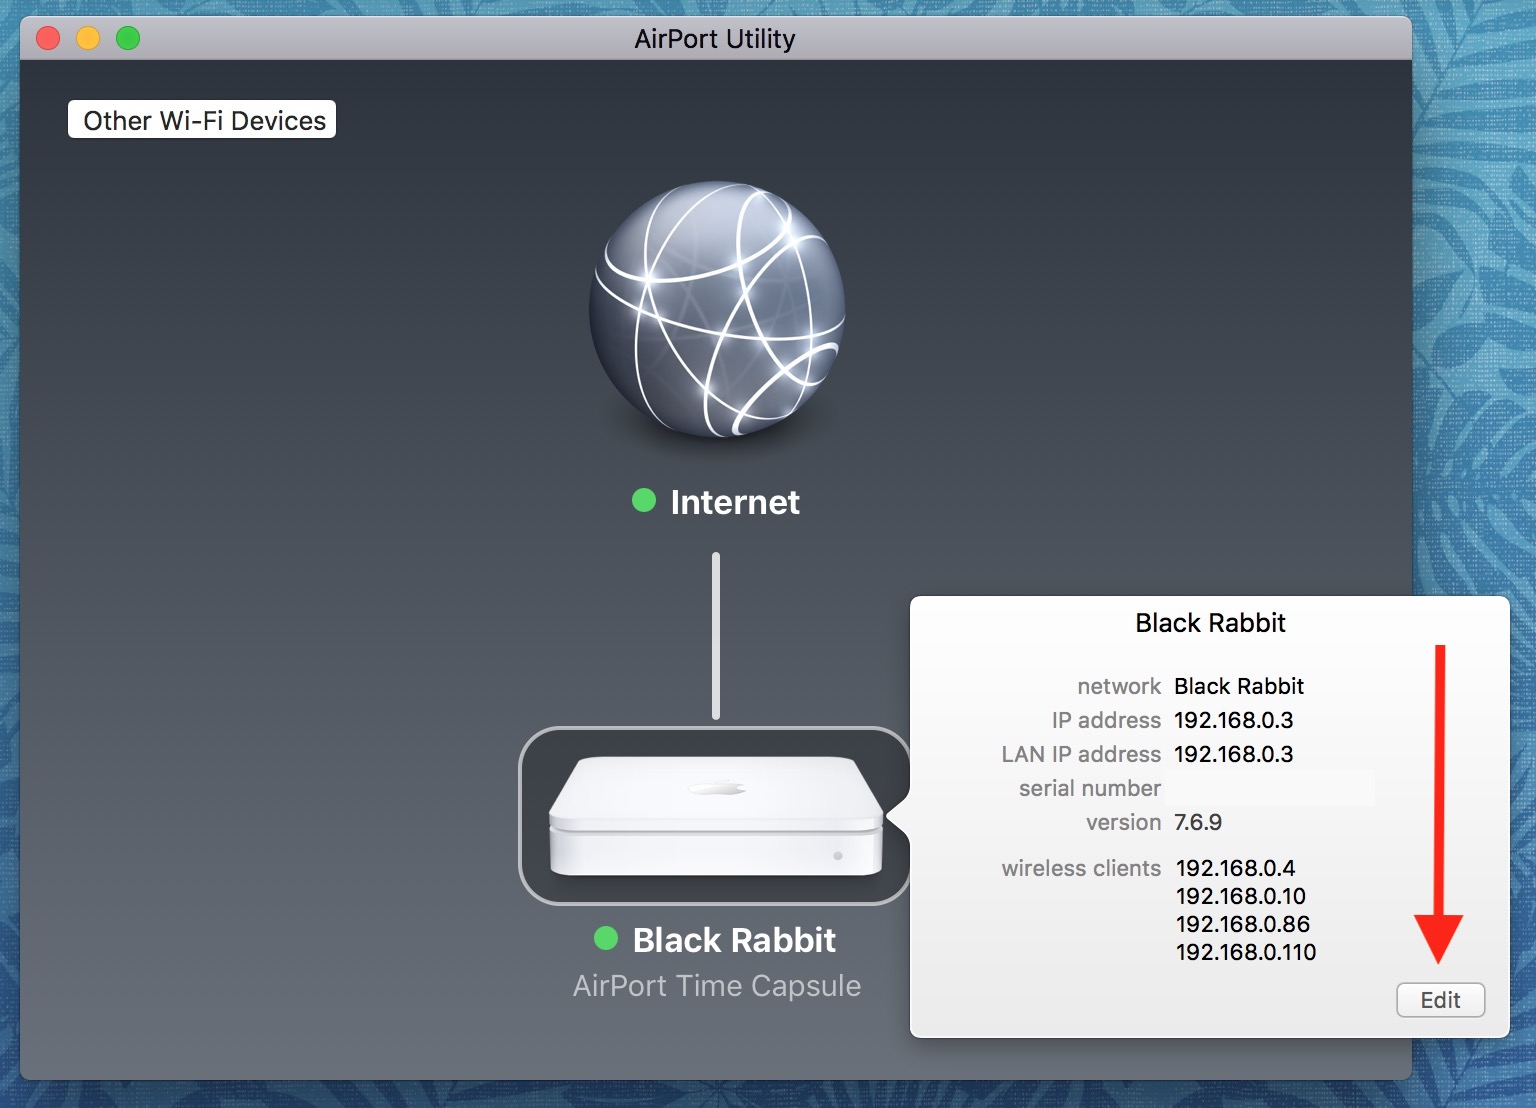 Edit Button on Info Window in AirPort Utility on the Mac lets you see Base Station details